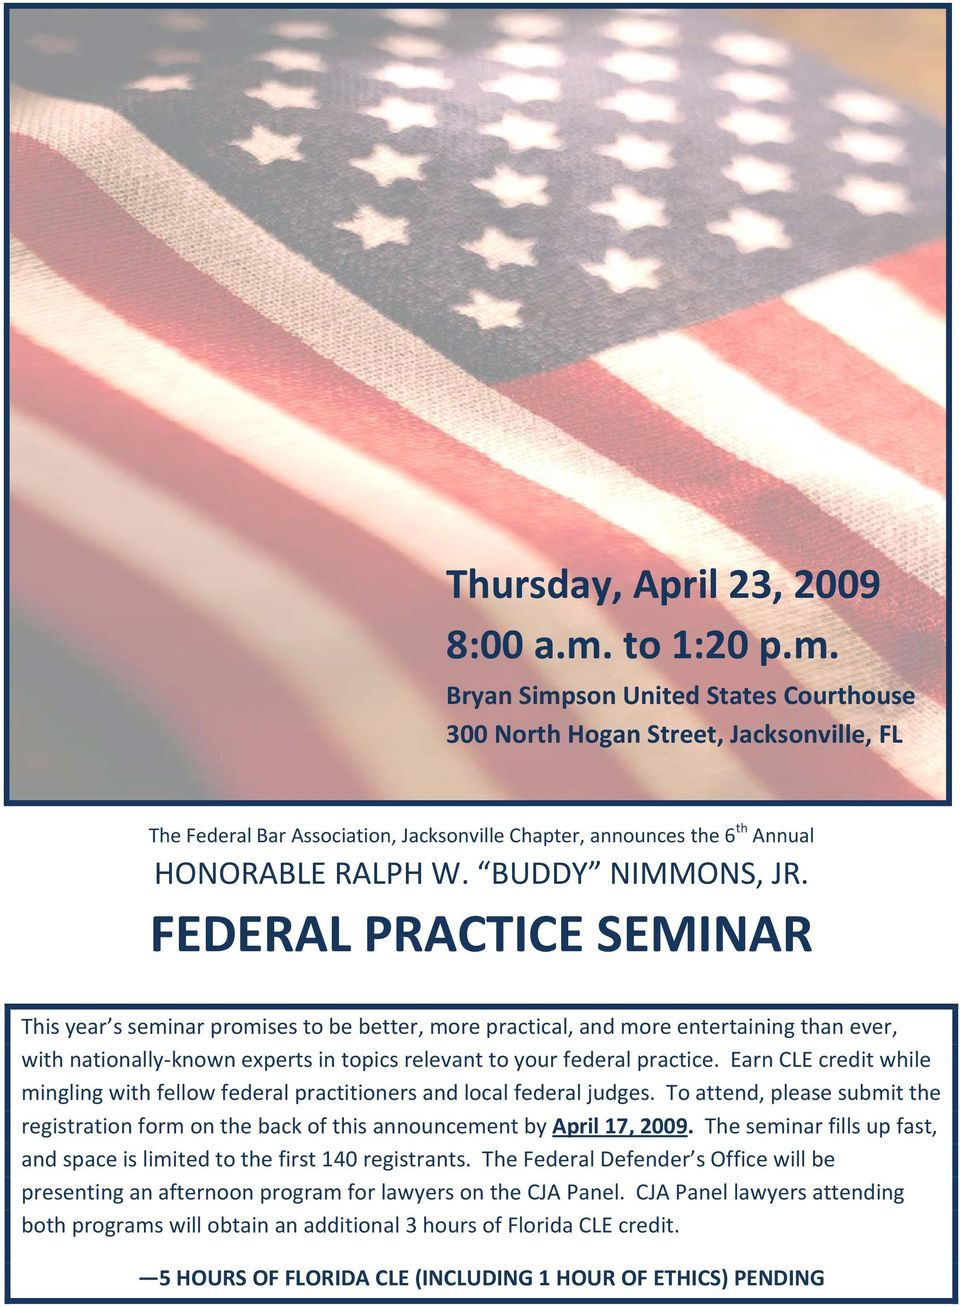 BUDDY NIMMONS, JR. This year s seminar promises to be better, more practical, and more entertaining than ever, with nationally known experts in topics relevant to your federal practice.